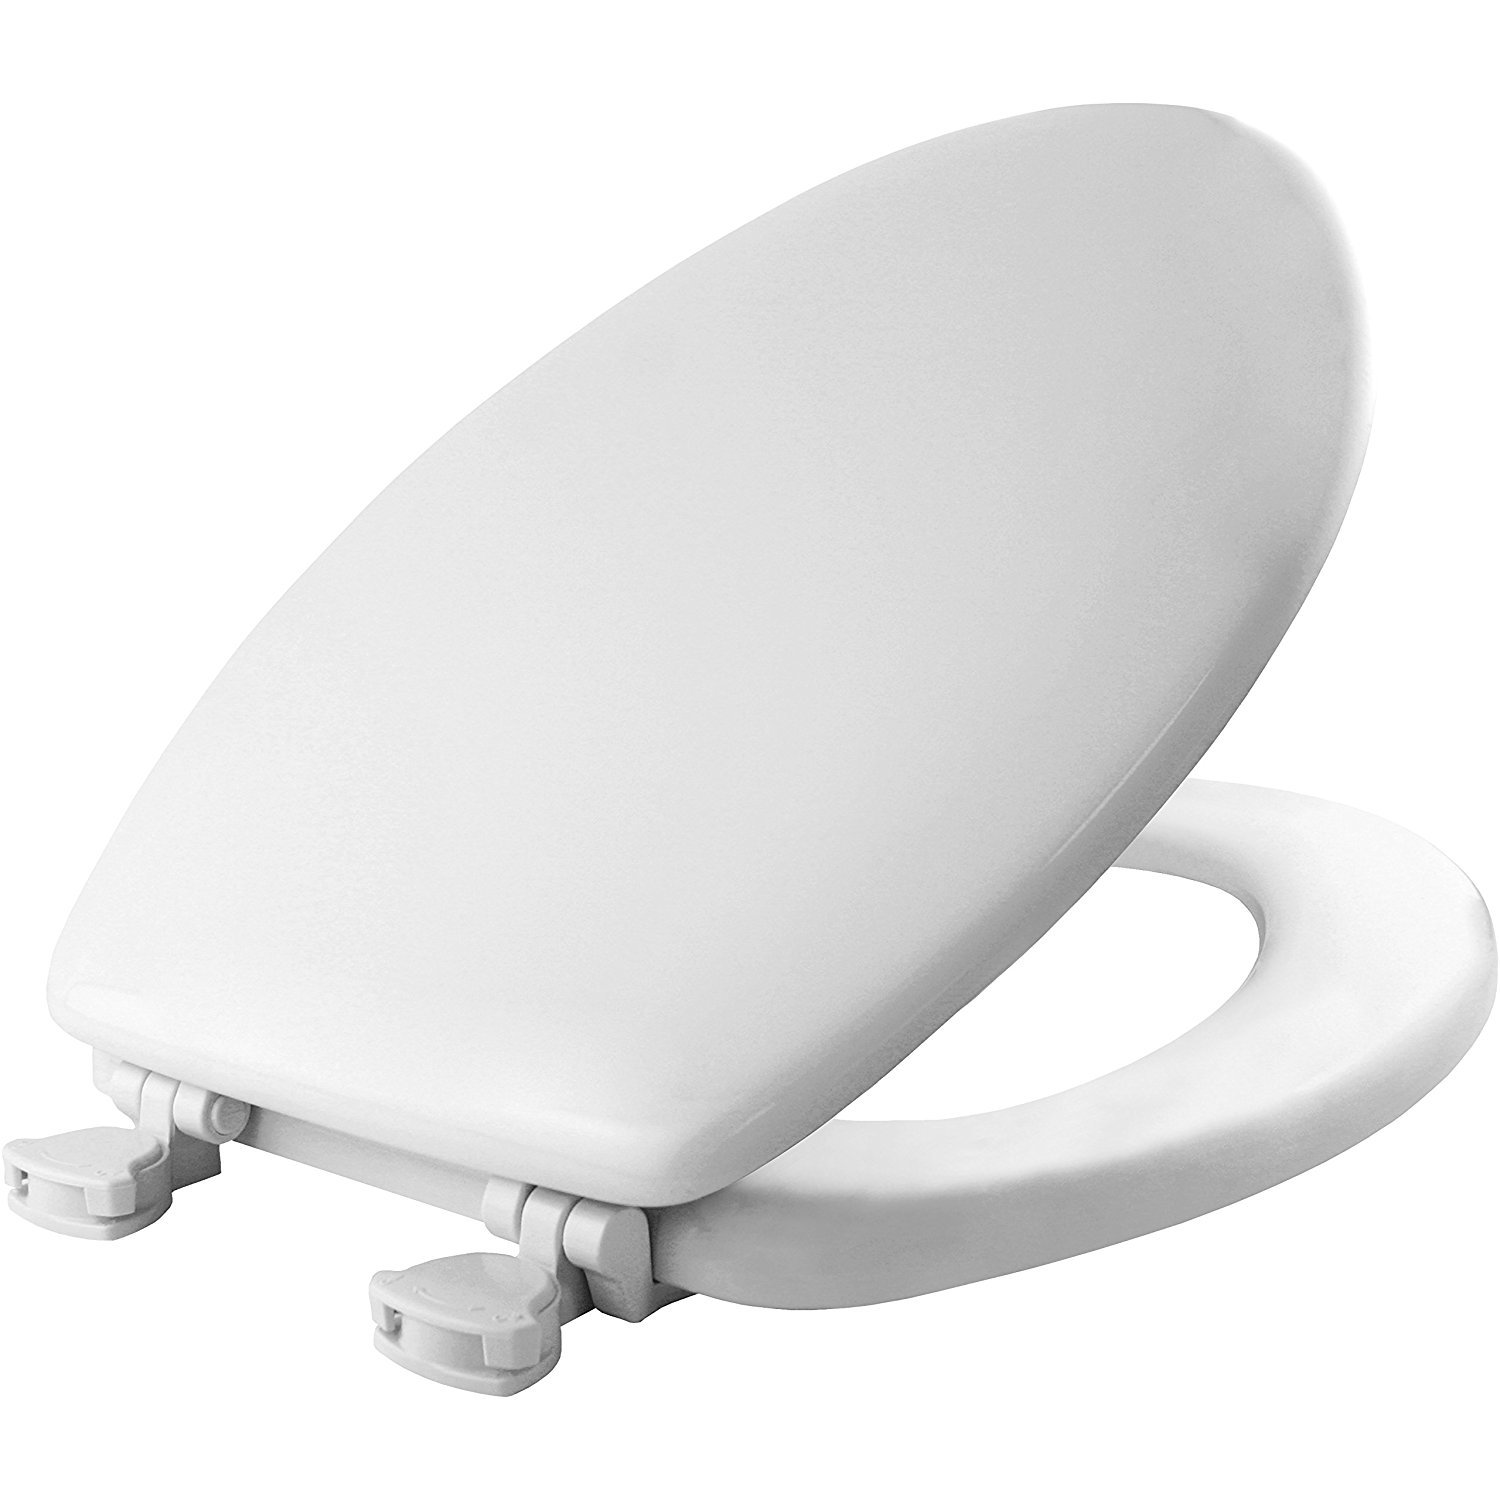 Mayfair Molded Wood Toilet Seat with Easy-Clean & Change Hinges, Elongated, White, 144ECA 000